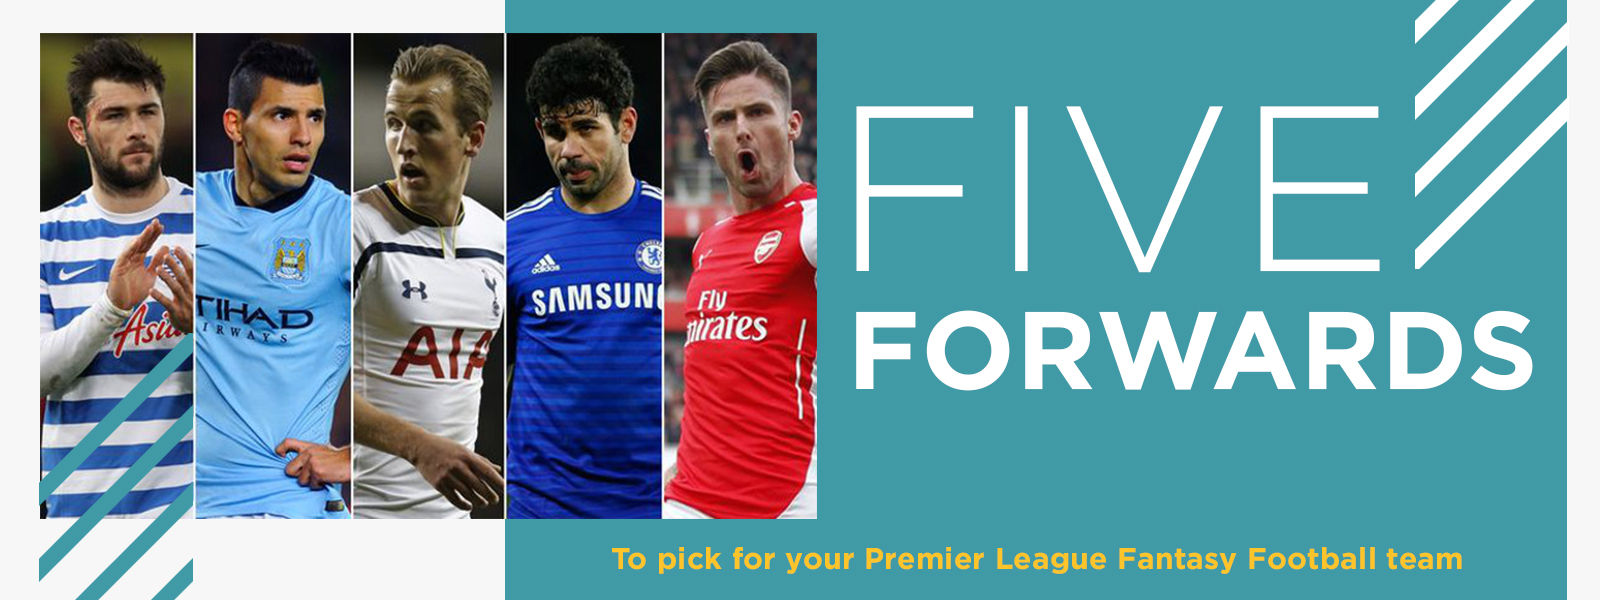 Top 5 Forwards For Your Fantasy Premier League Football Team